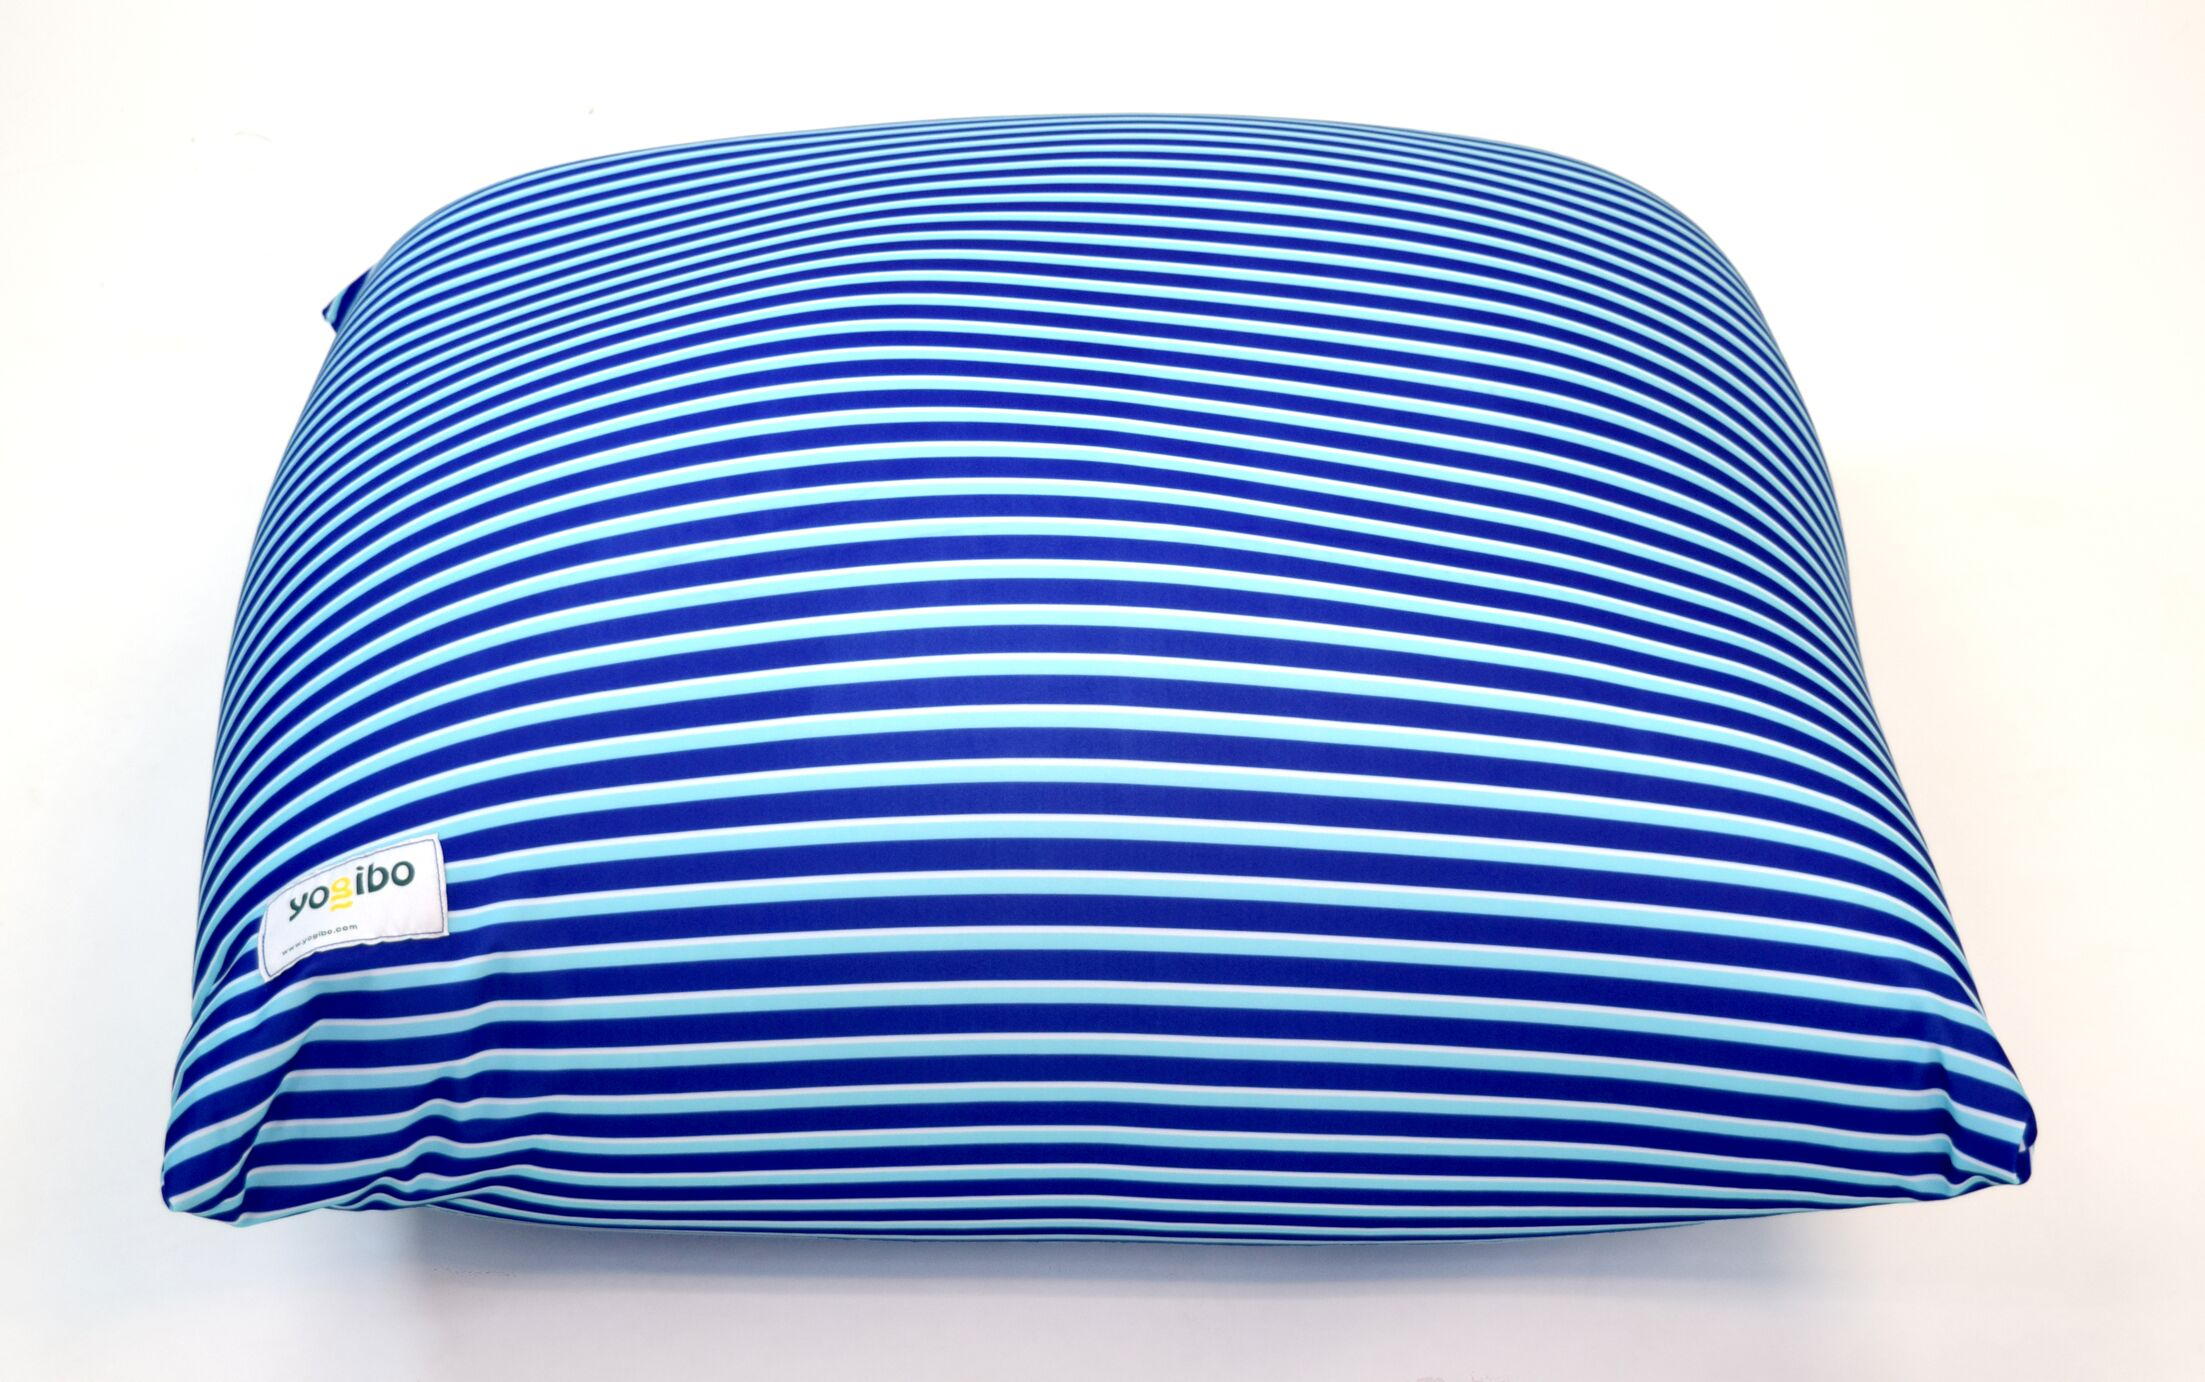 Zoola Marine Bean Bag Chair